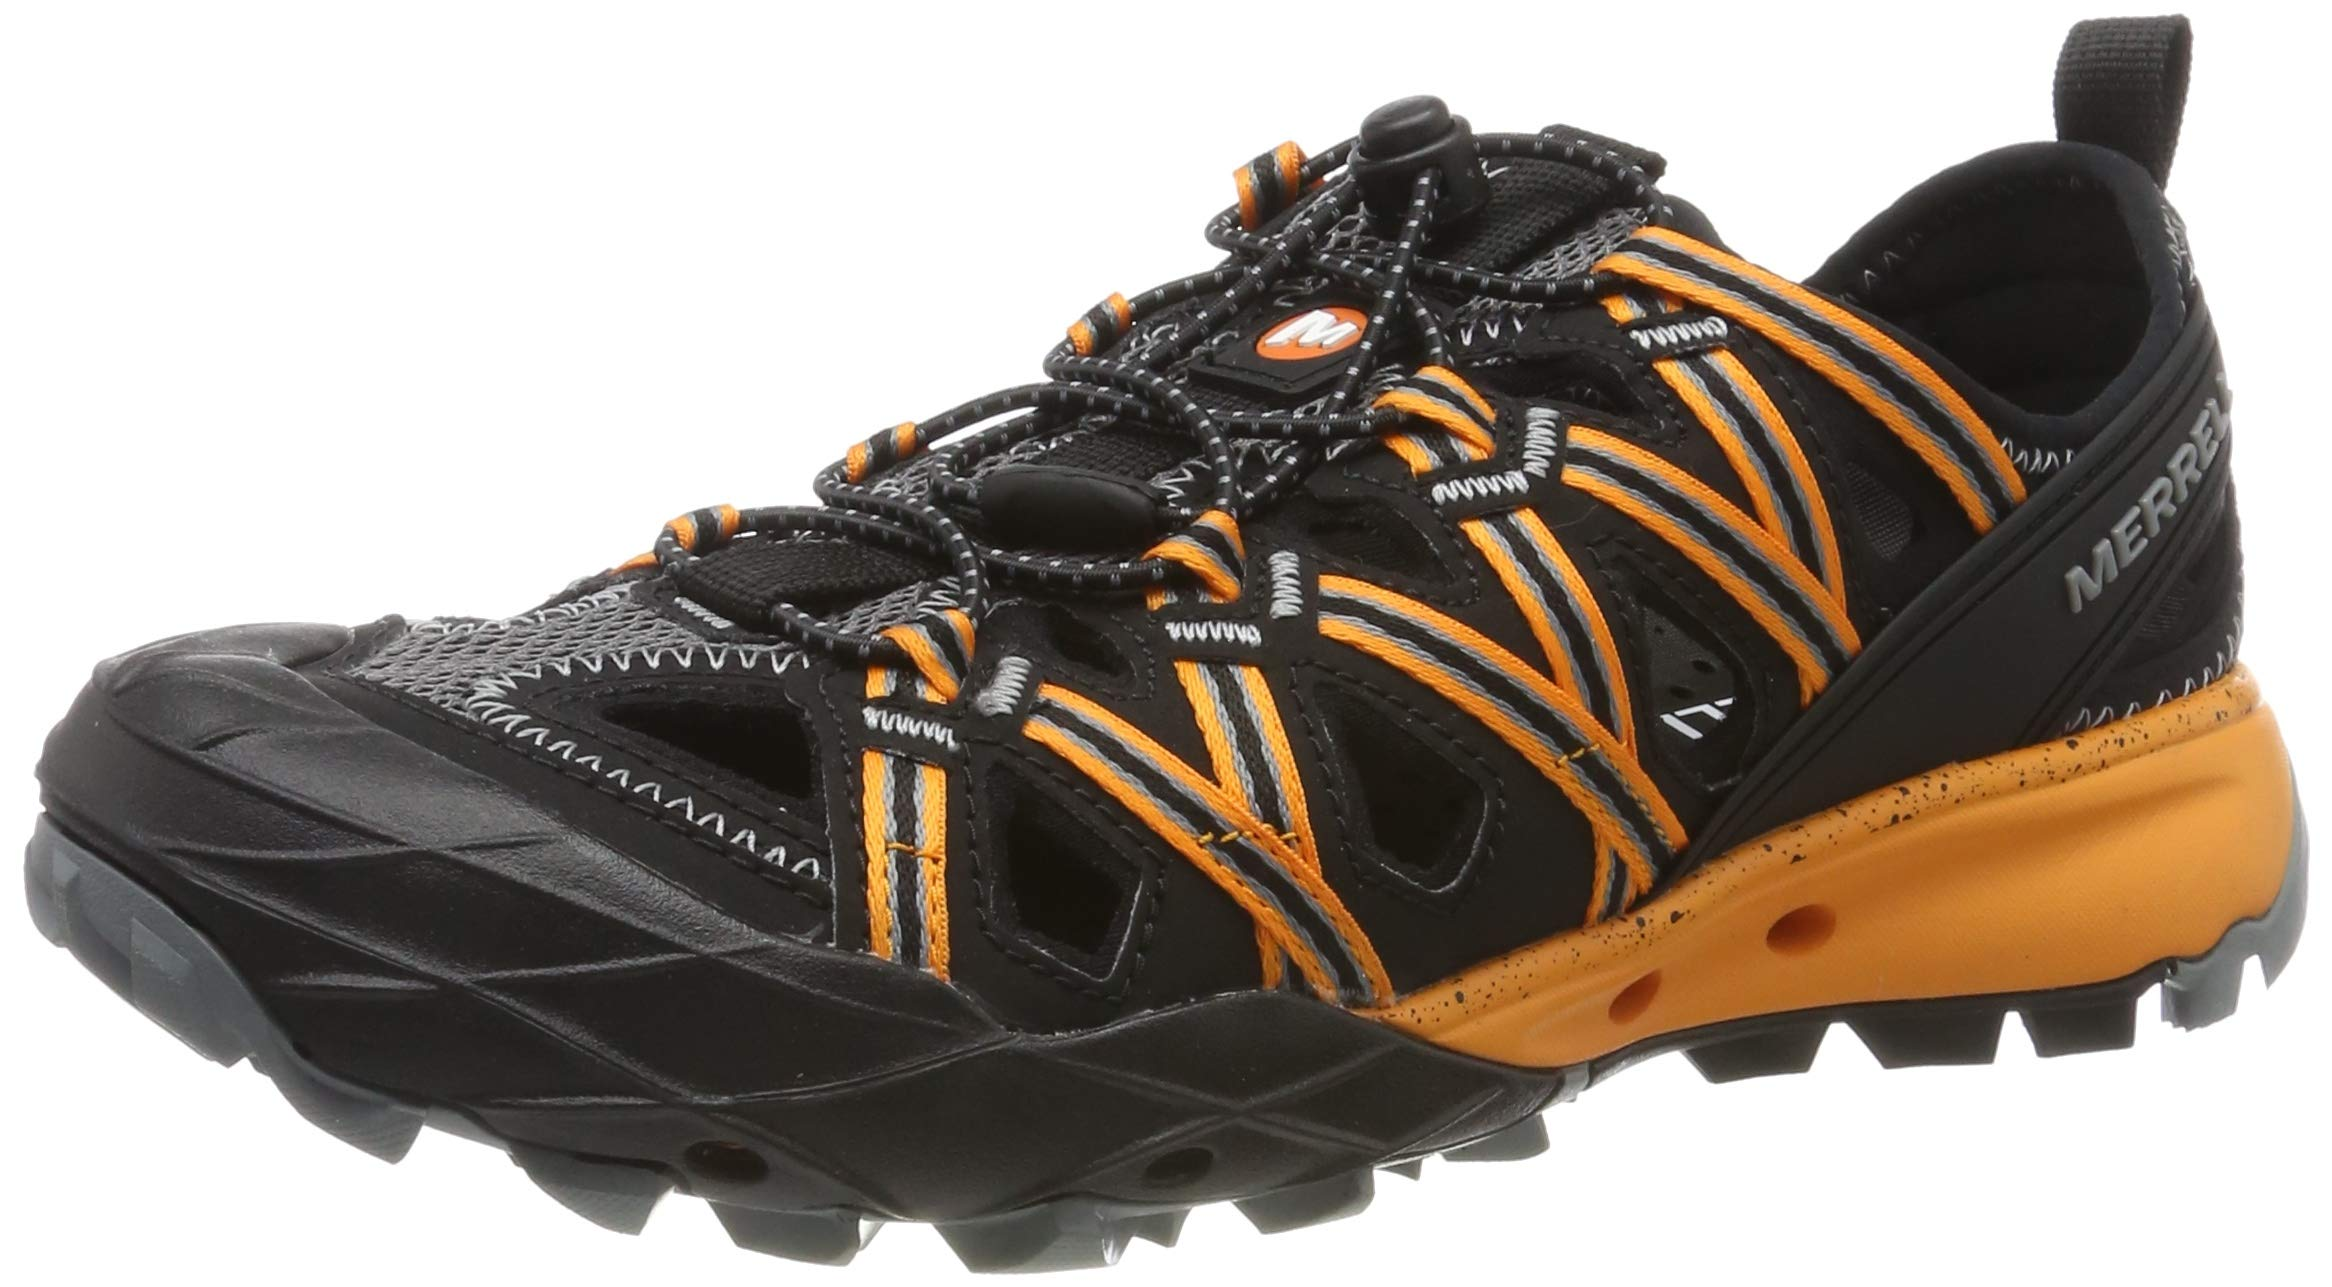 Merrell Men's Choprock Water Shoes, Black Flame Orange, 7.5 (41.5 EU)